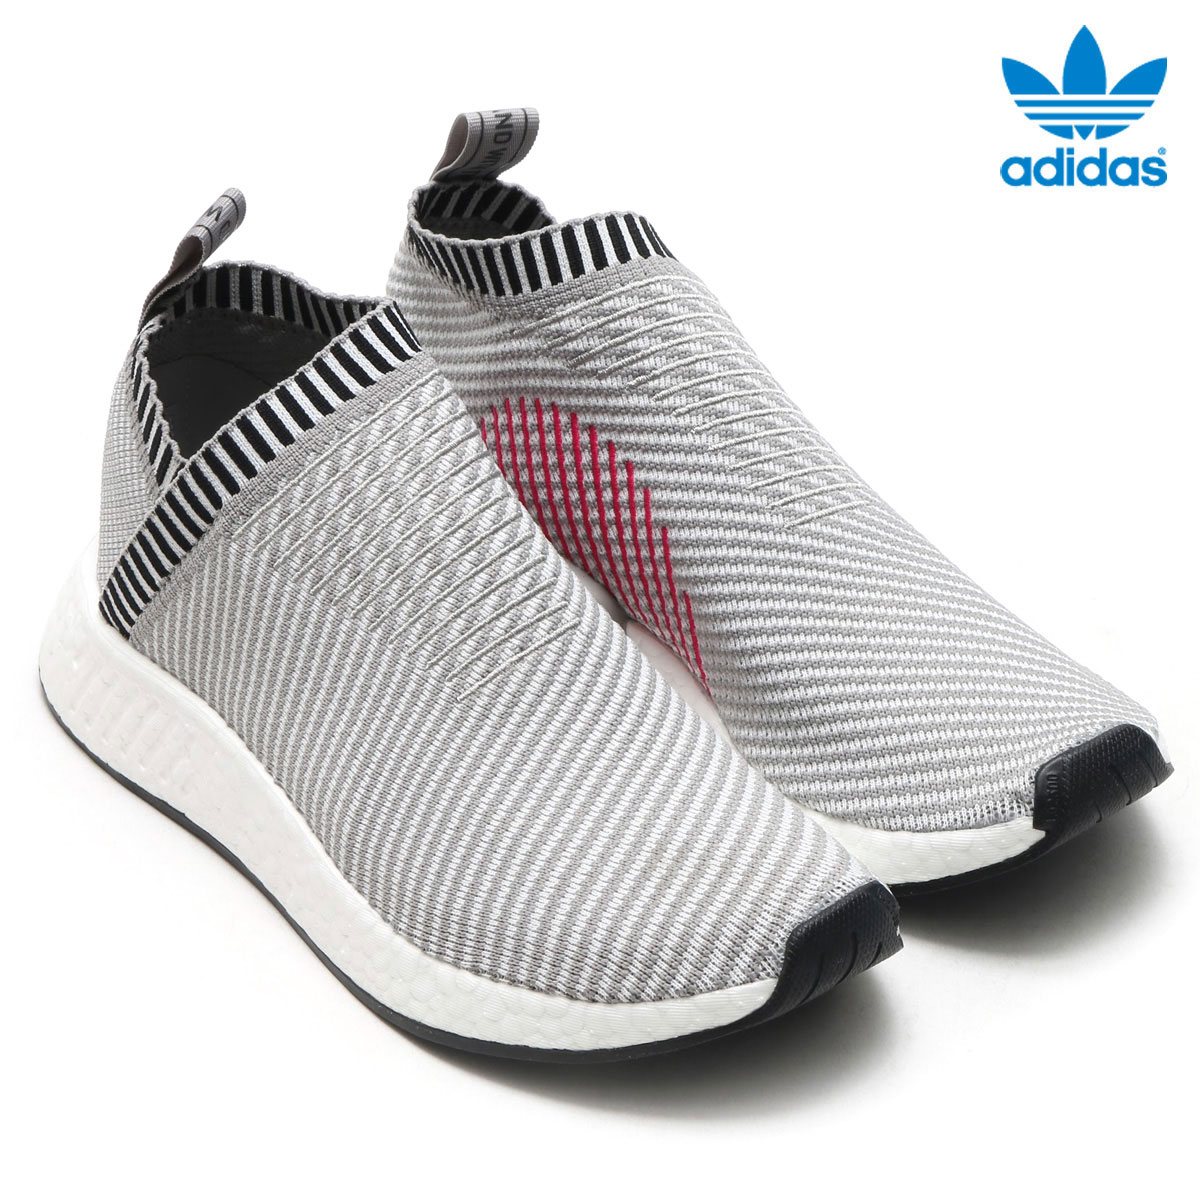 adidas Originals NMD CS2 PK(アディダス オリジナルス NMD CS2 PK)(DGH SOLID GREY)